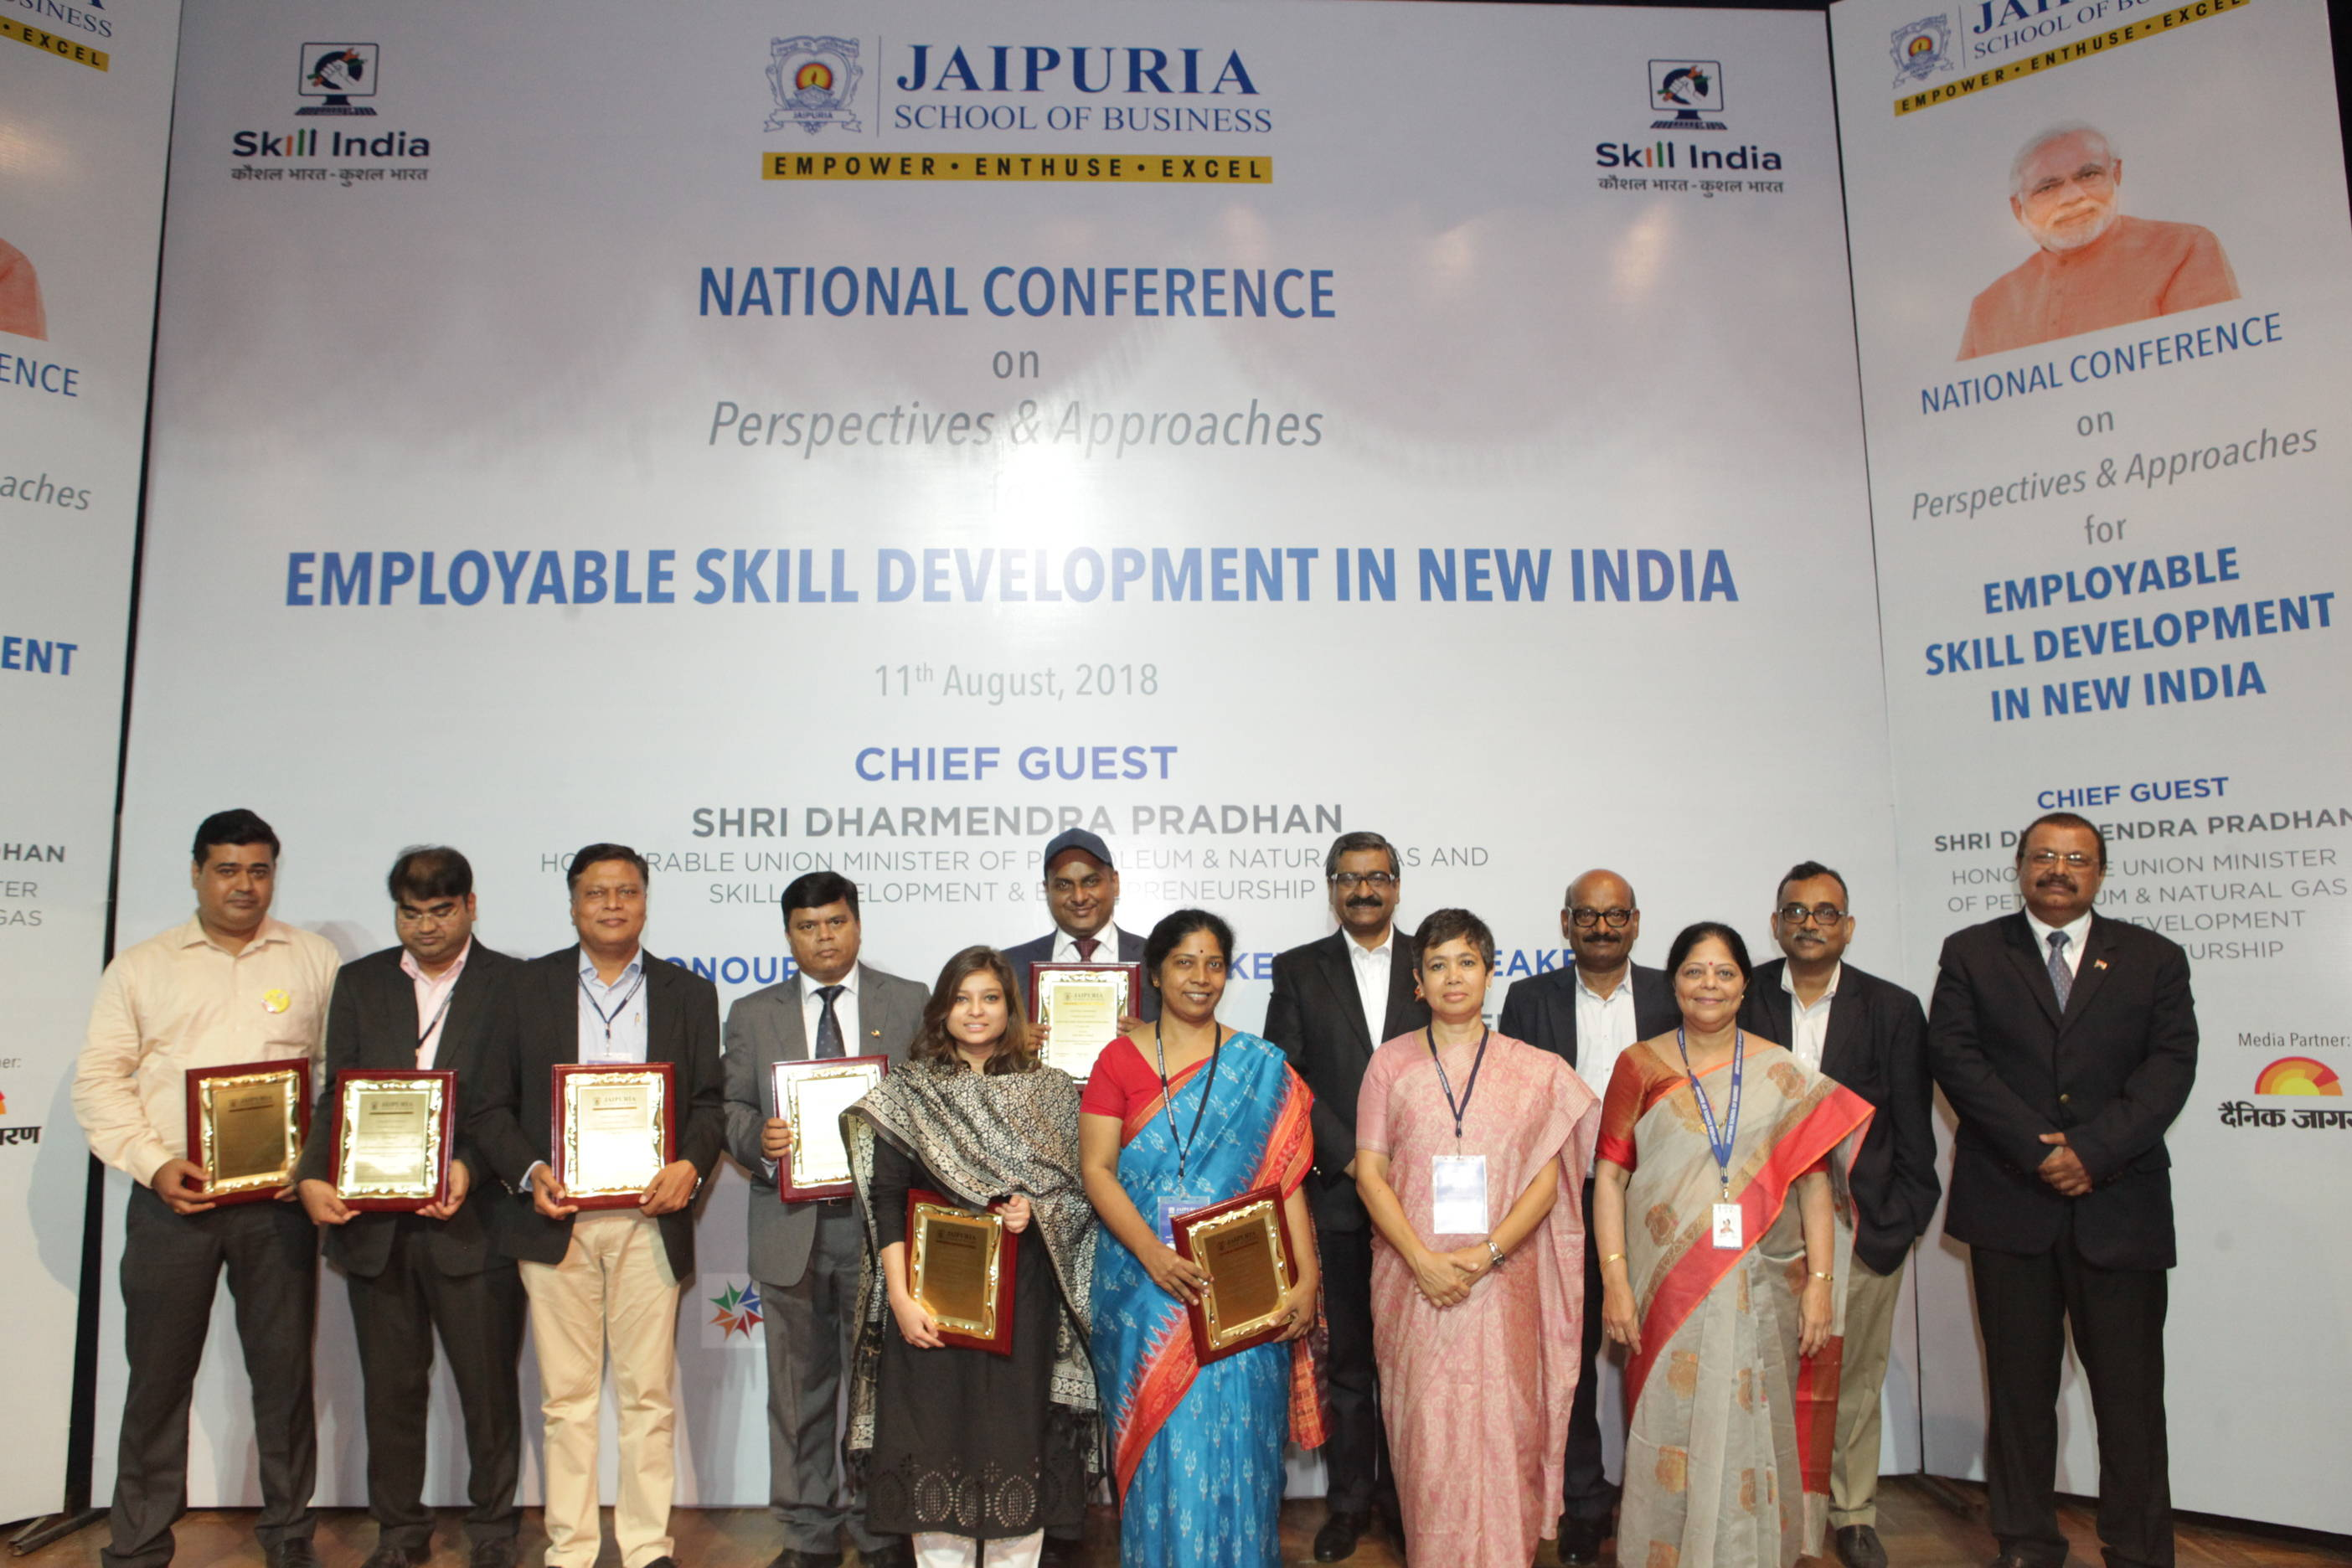 jaipuria_school_of_business_skill_development_conference